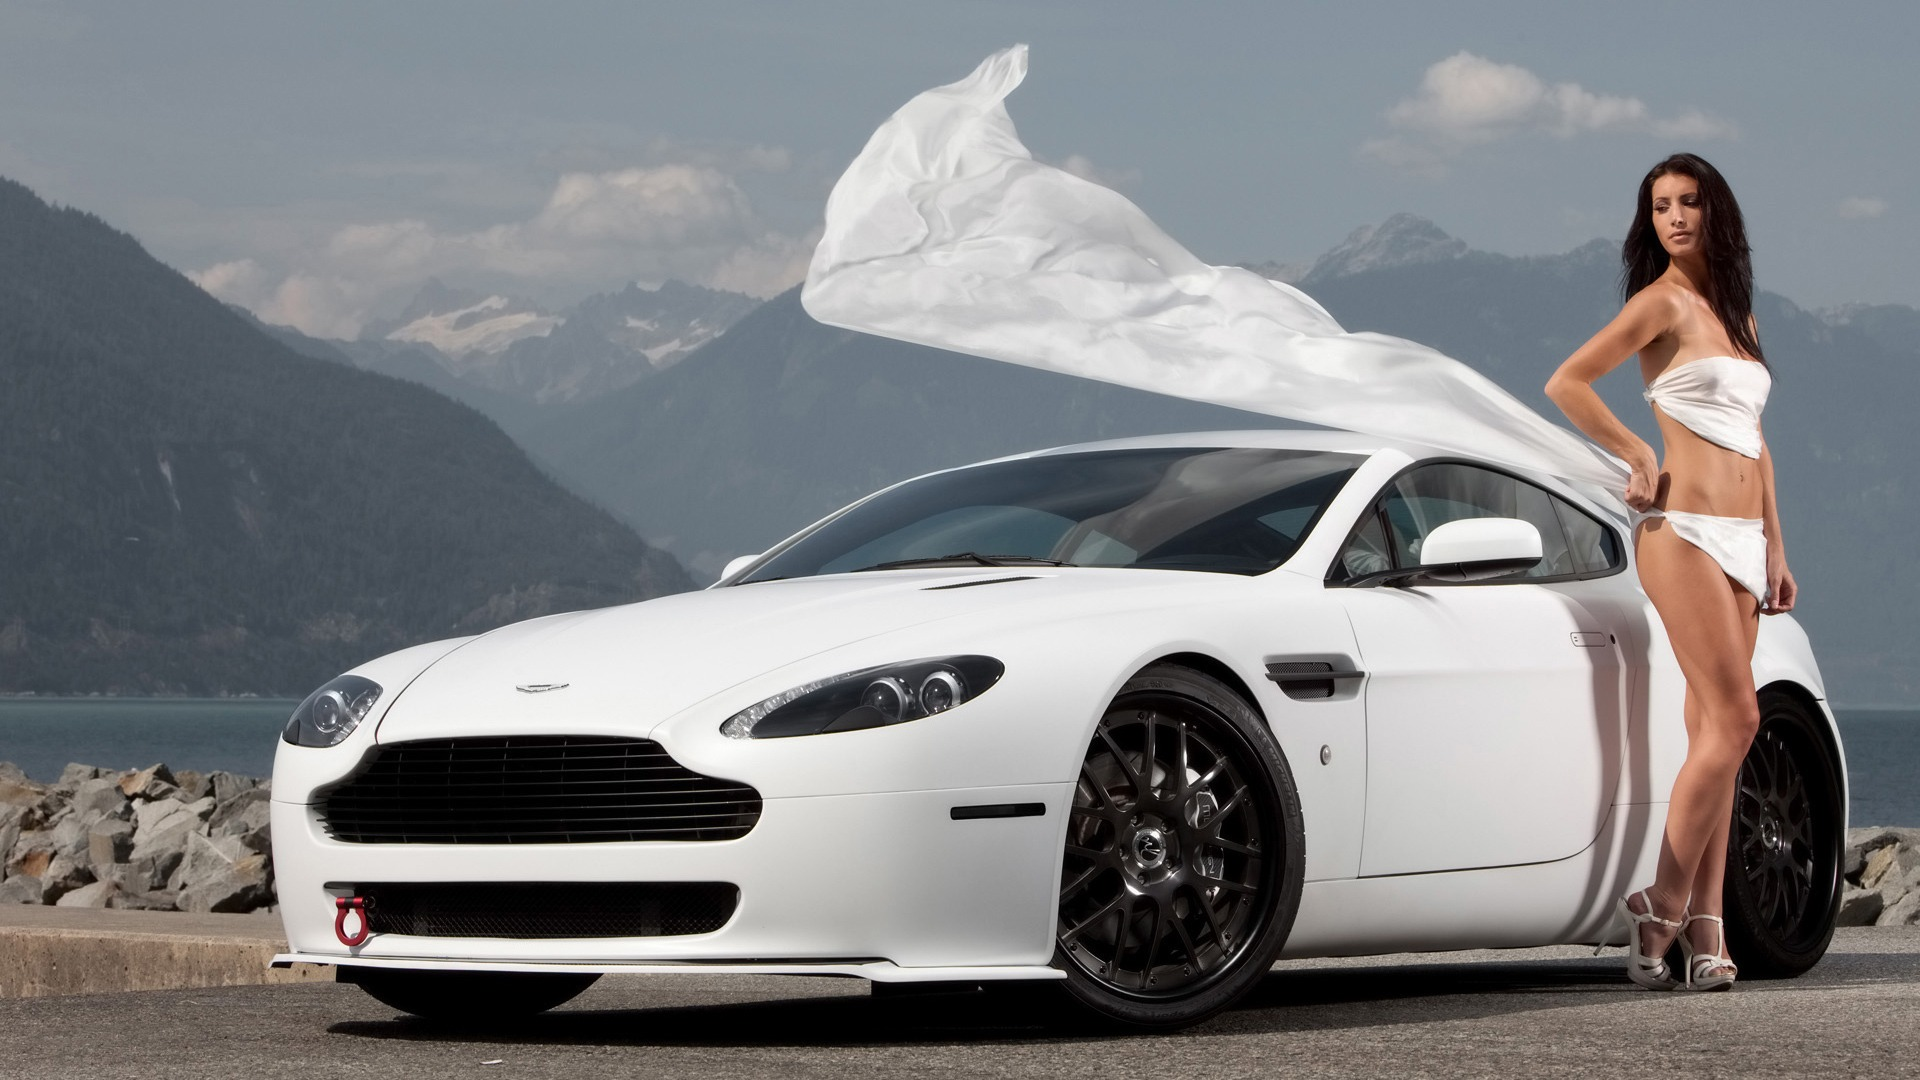 10 Most Popular Cool Hd Car Wallpapers Full Hd 1920 1080: 1920x1080 Aston Martin Girl In White Desktop PC And Mac